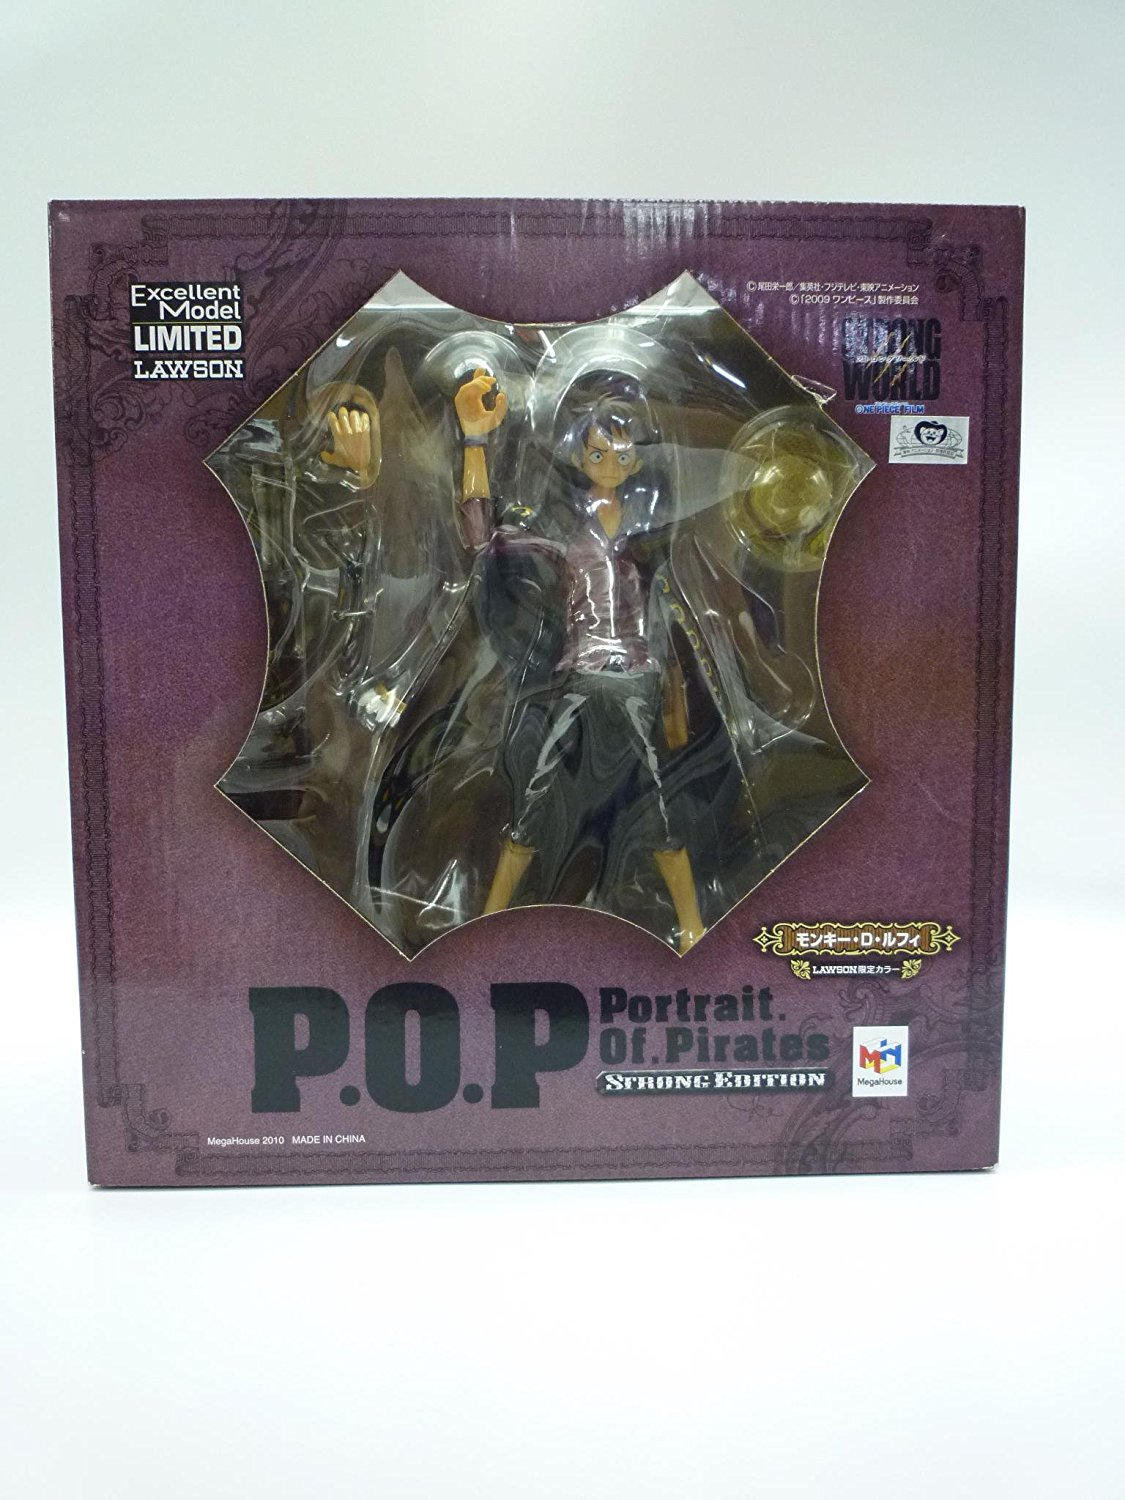 """Excellent Model Limited LAWSON Portrait of Pirates (P.O.P) One Piece """"Strong Edition"""" : Monkey D. Luffy Lawson Limited Metallic Color PVC Figure > Megahouse"""